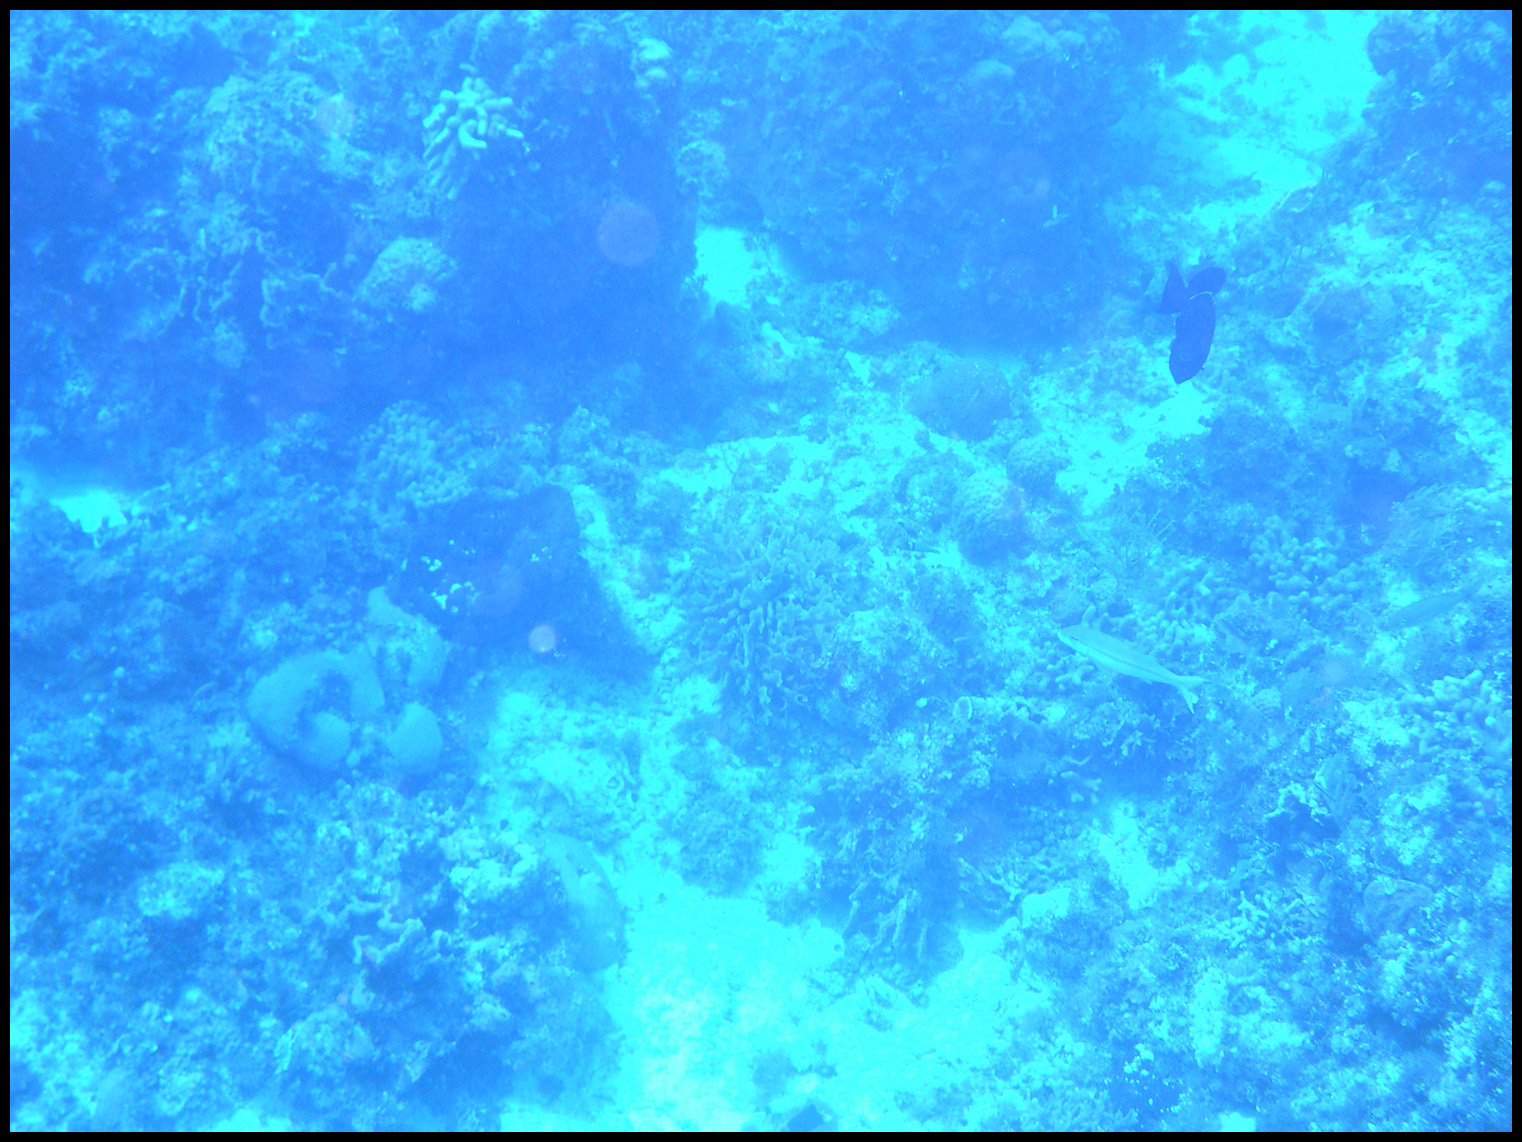 Some sort of black trigger and a couple other fish in the lower right.